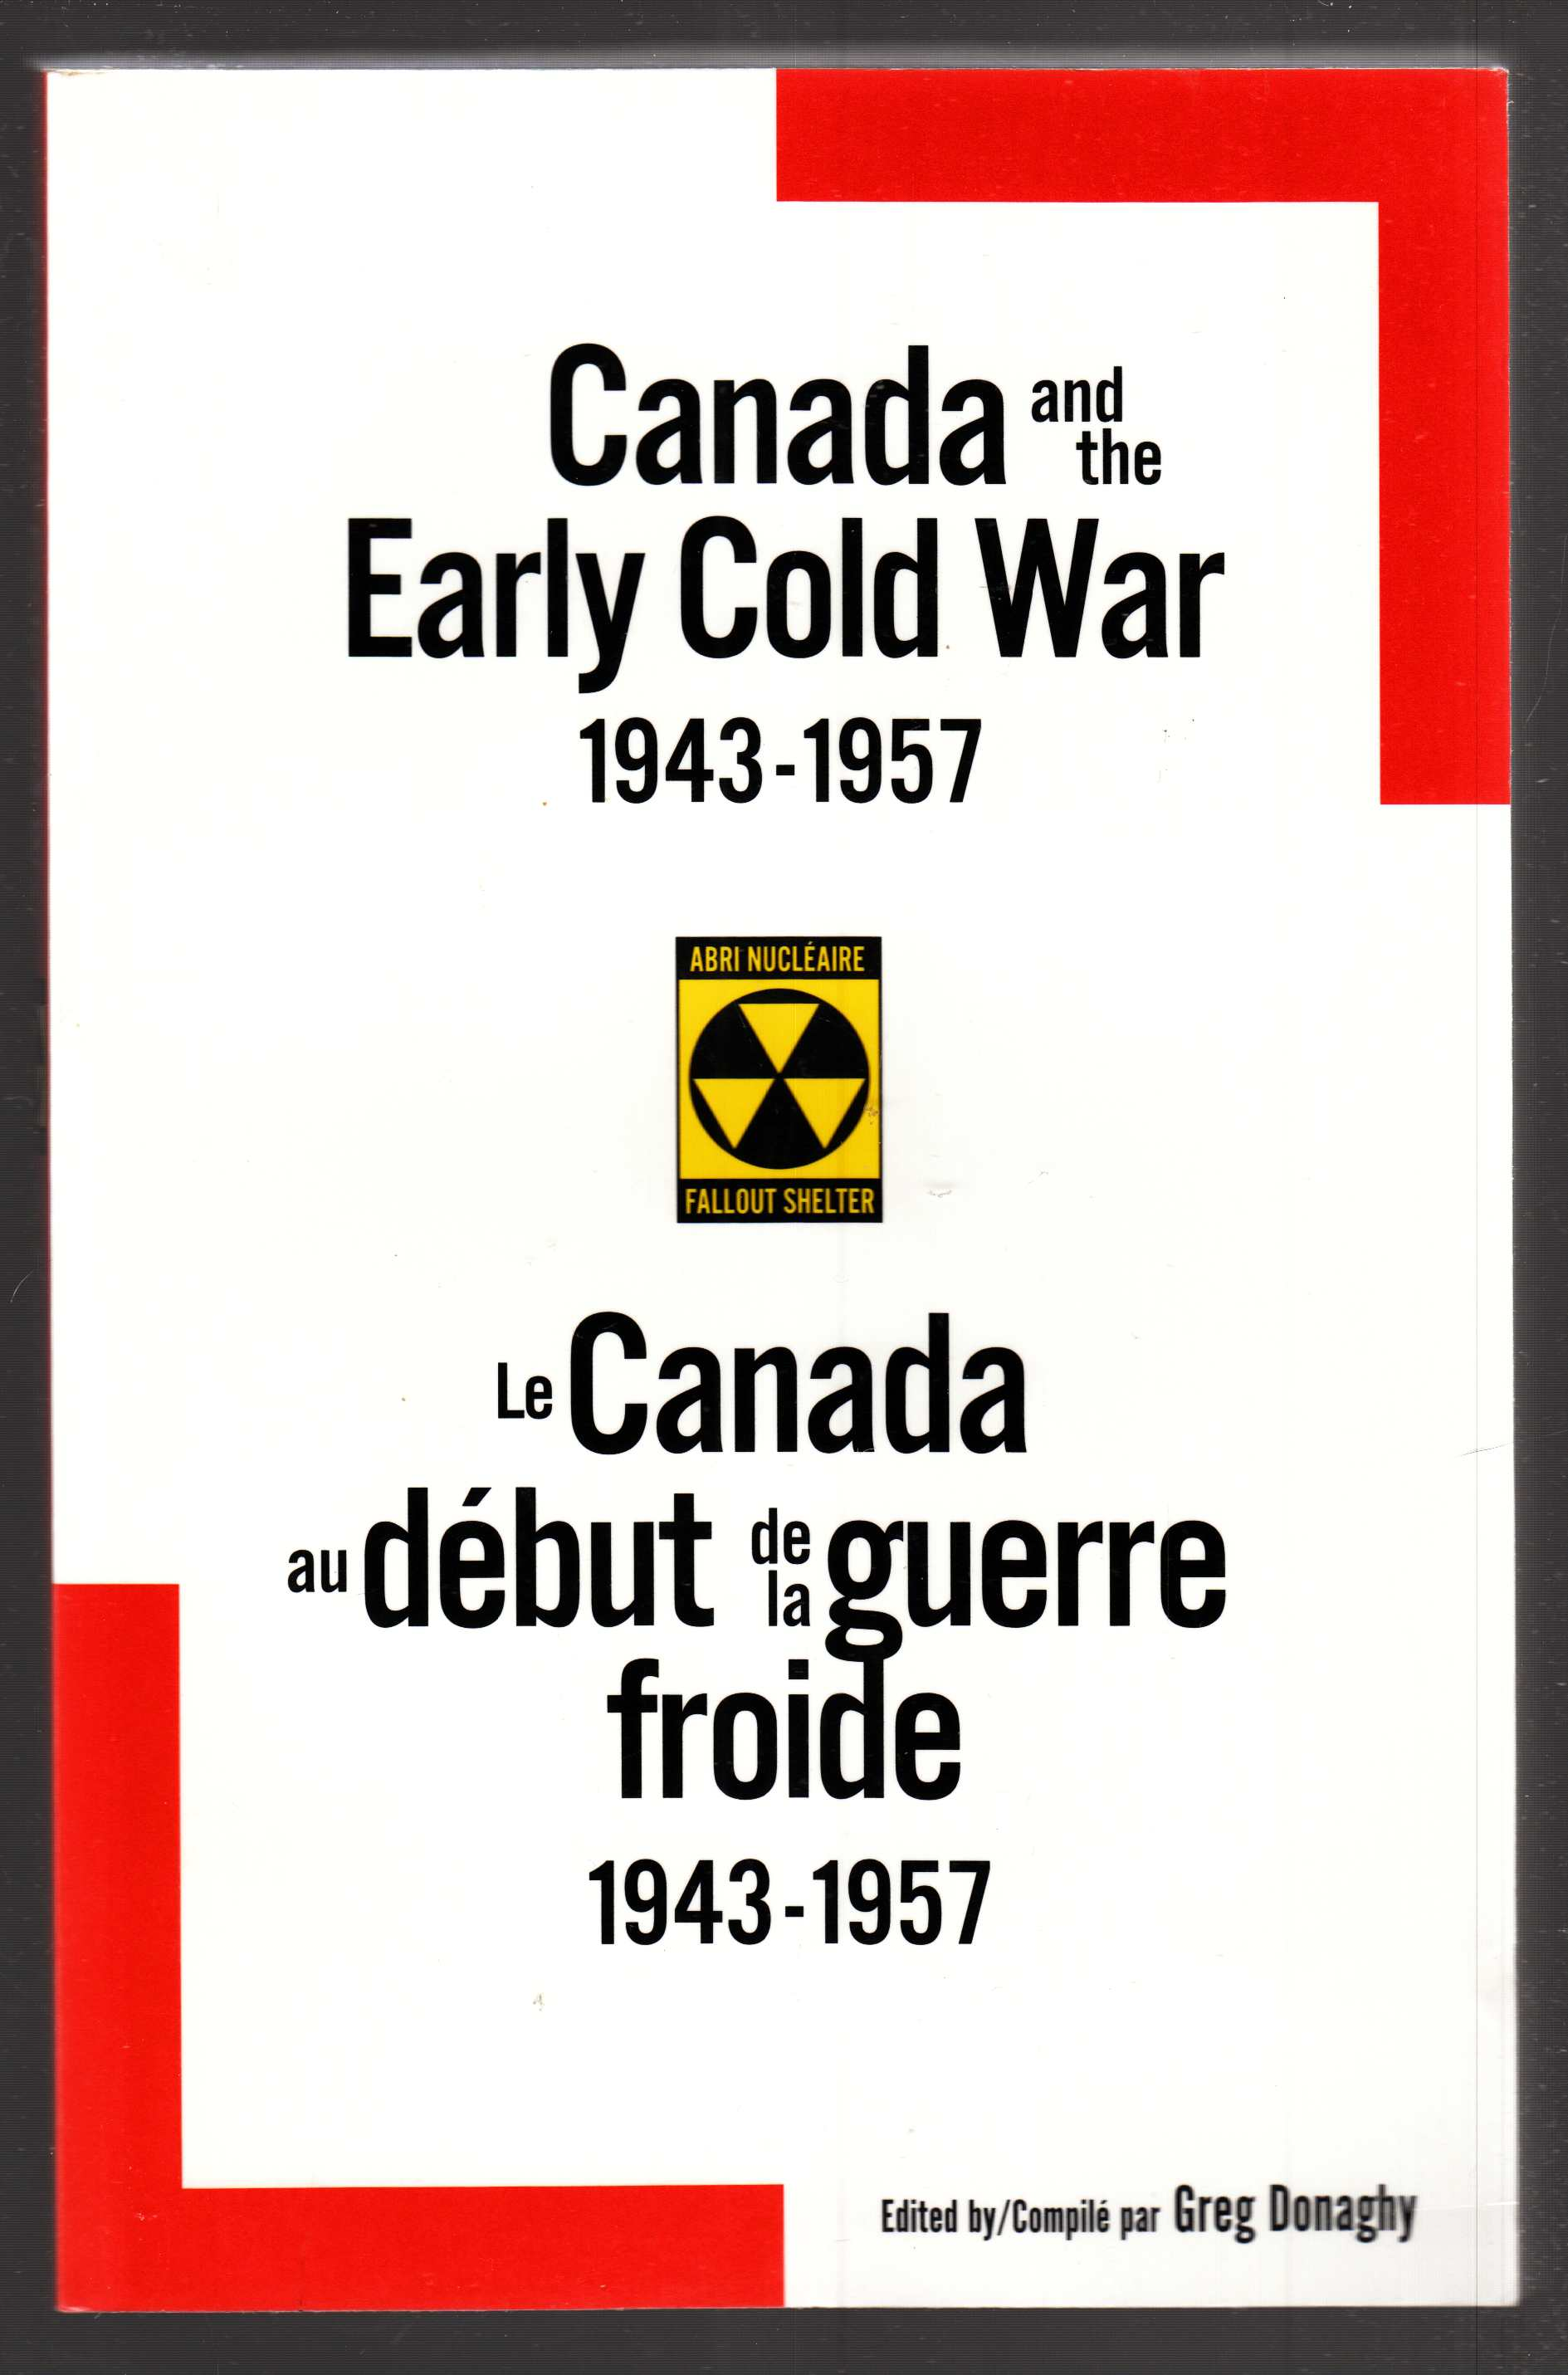 Image for Canada and the Early Cold War 1943-1957/Le Canada Au Debut De LA Guerre Froide, 1943-1957